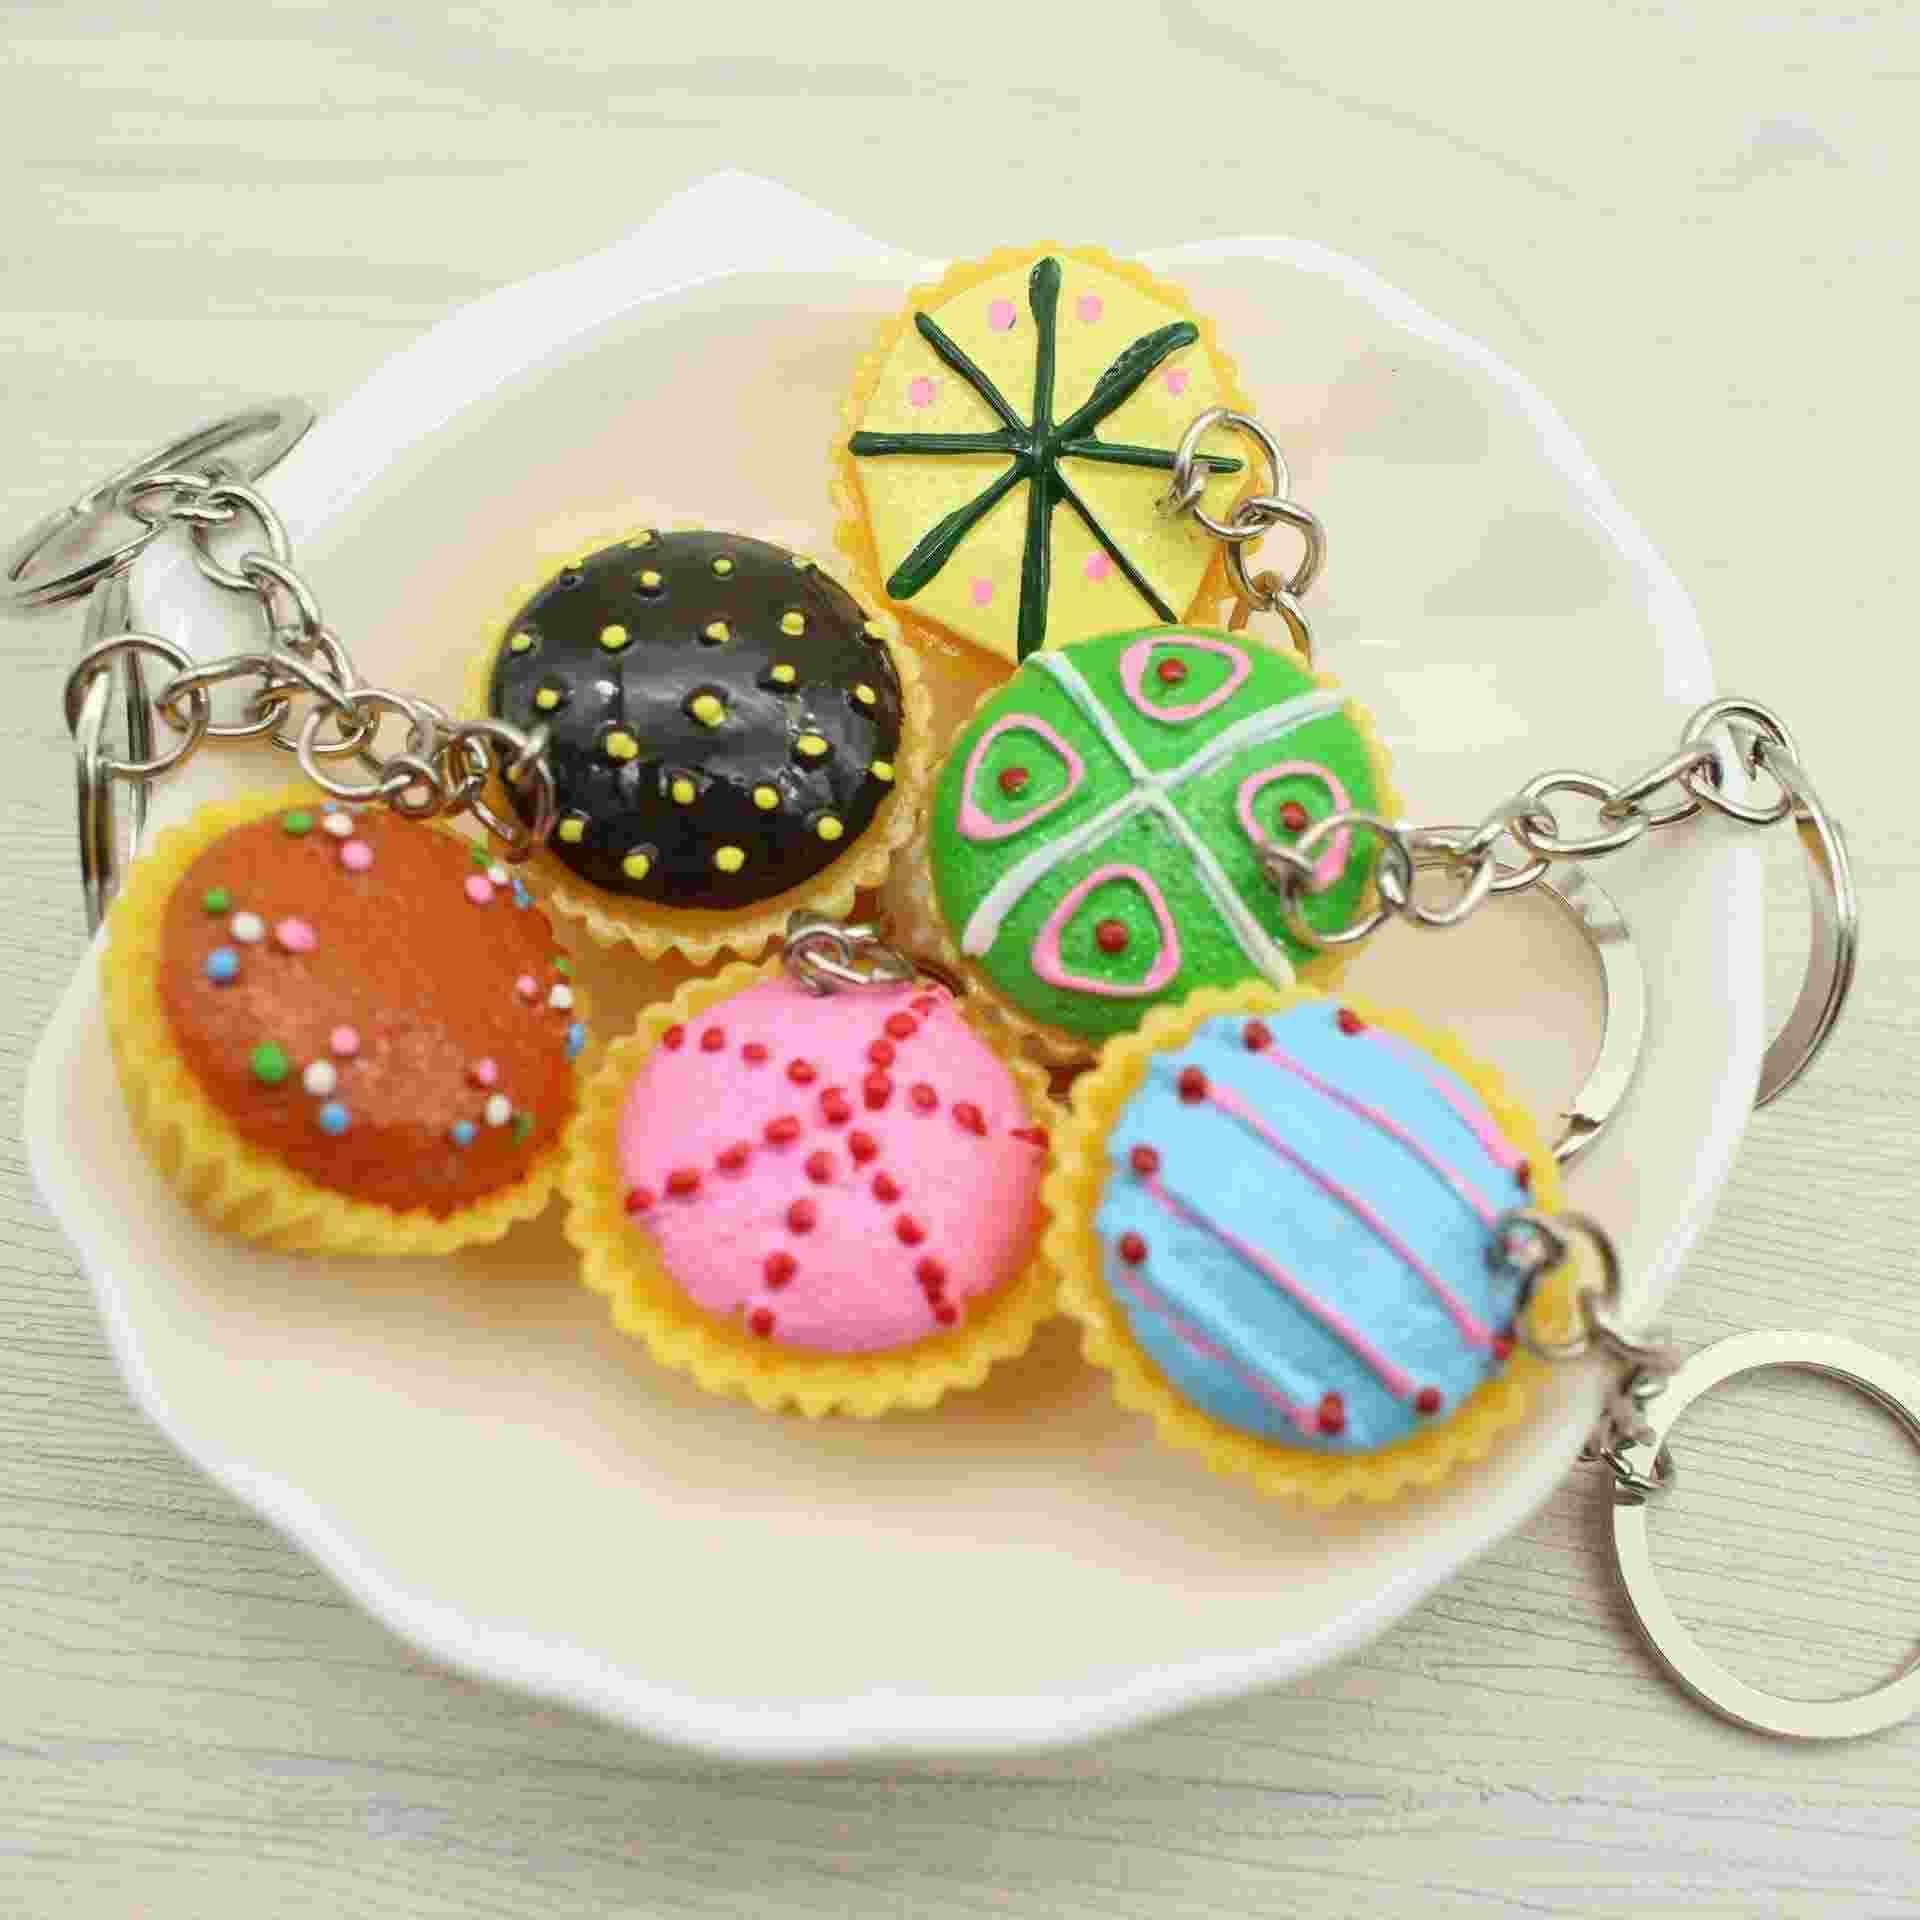 Korean cute personality creative gifts mini food simulation resin Cup Cake key buckle All kinds of small gifts